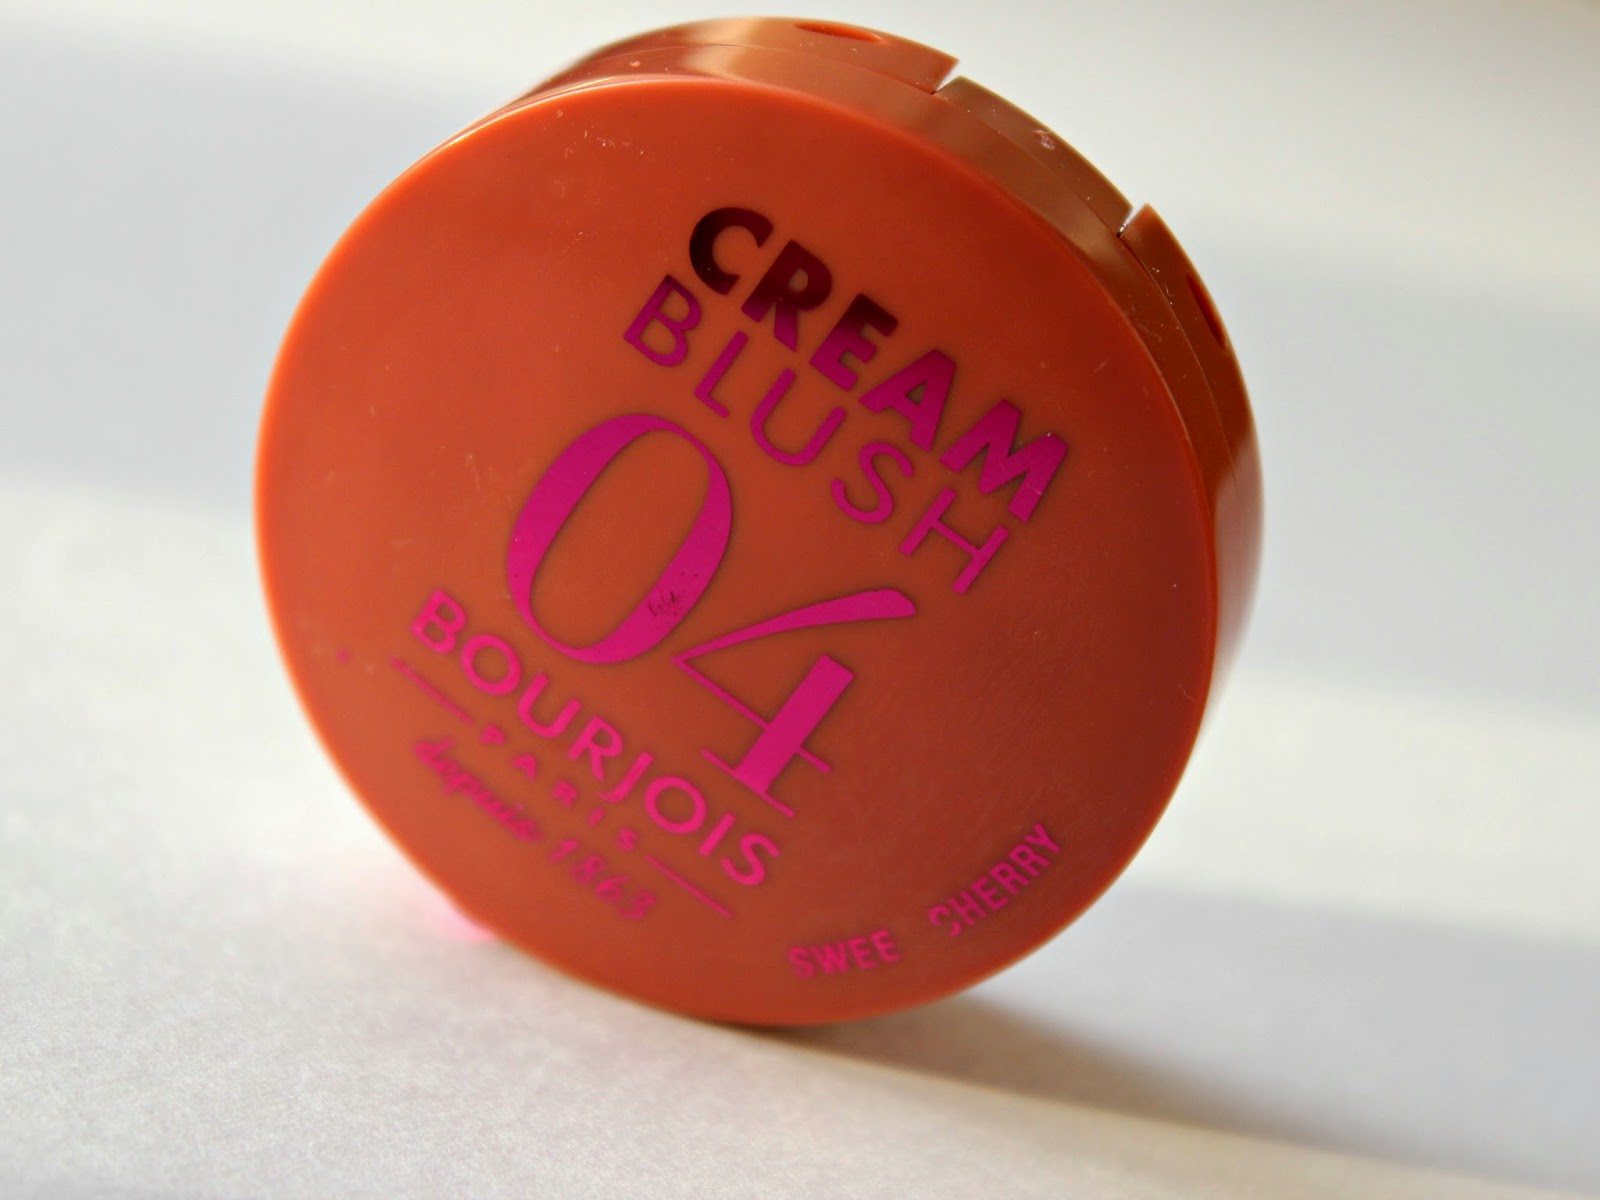 A picture of the Bourjois Cream Blush in Sweet Cherry